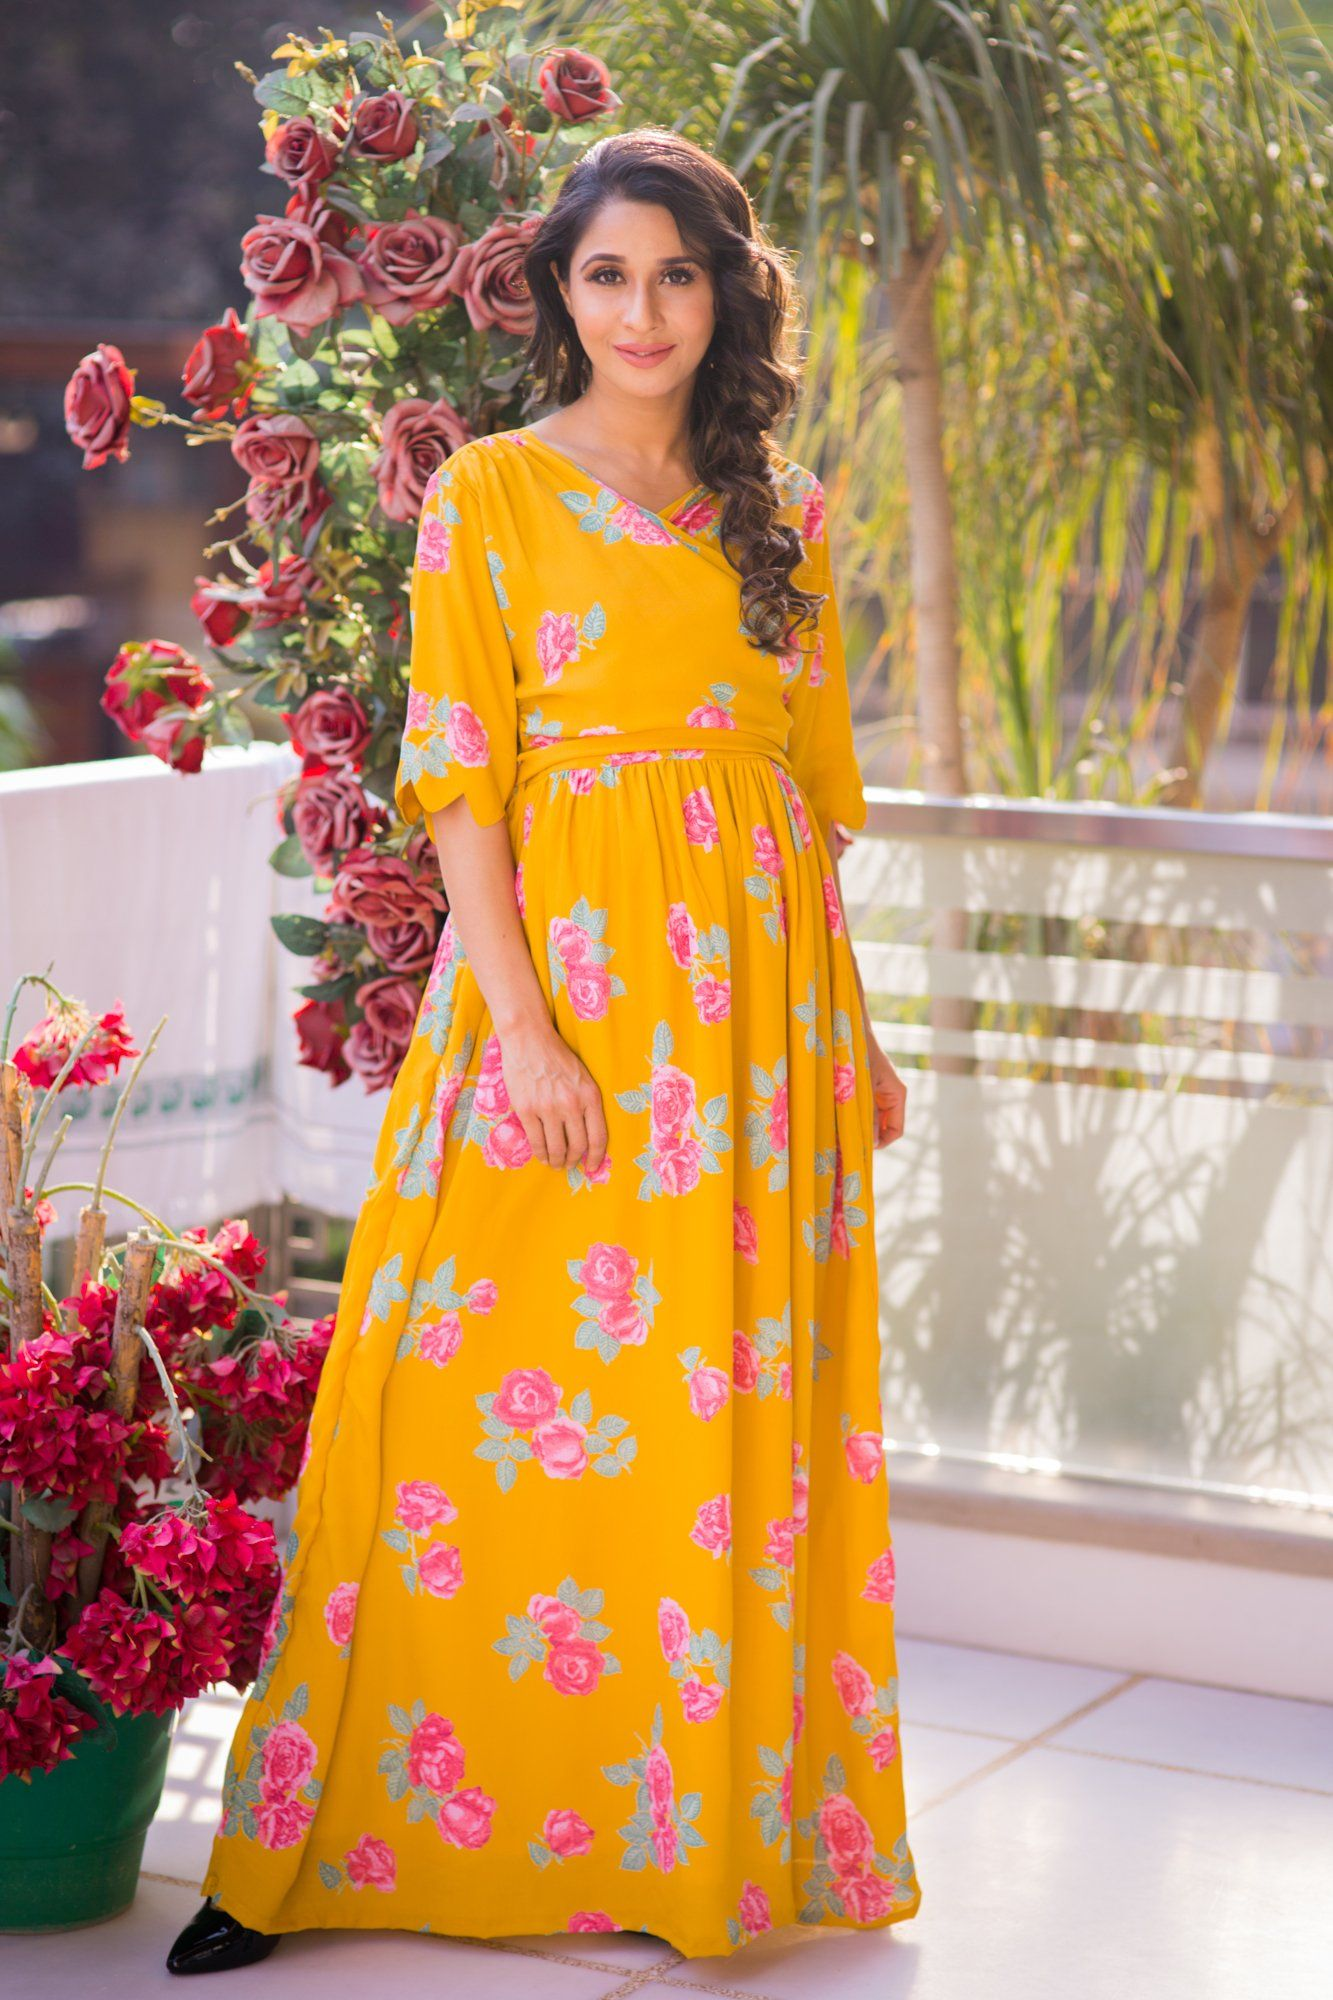 Formal maternity dresses online images braidsmaid dress buy maternity clothes pregnancy wear online india fresh blossom mustard maternity nursing crepe wrap dress ombrellifo ombrellifo Choice Image